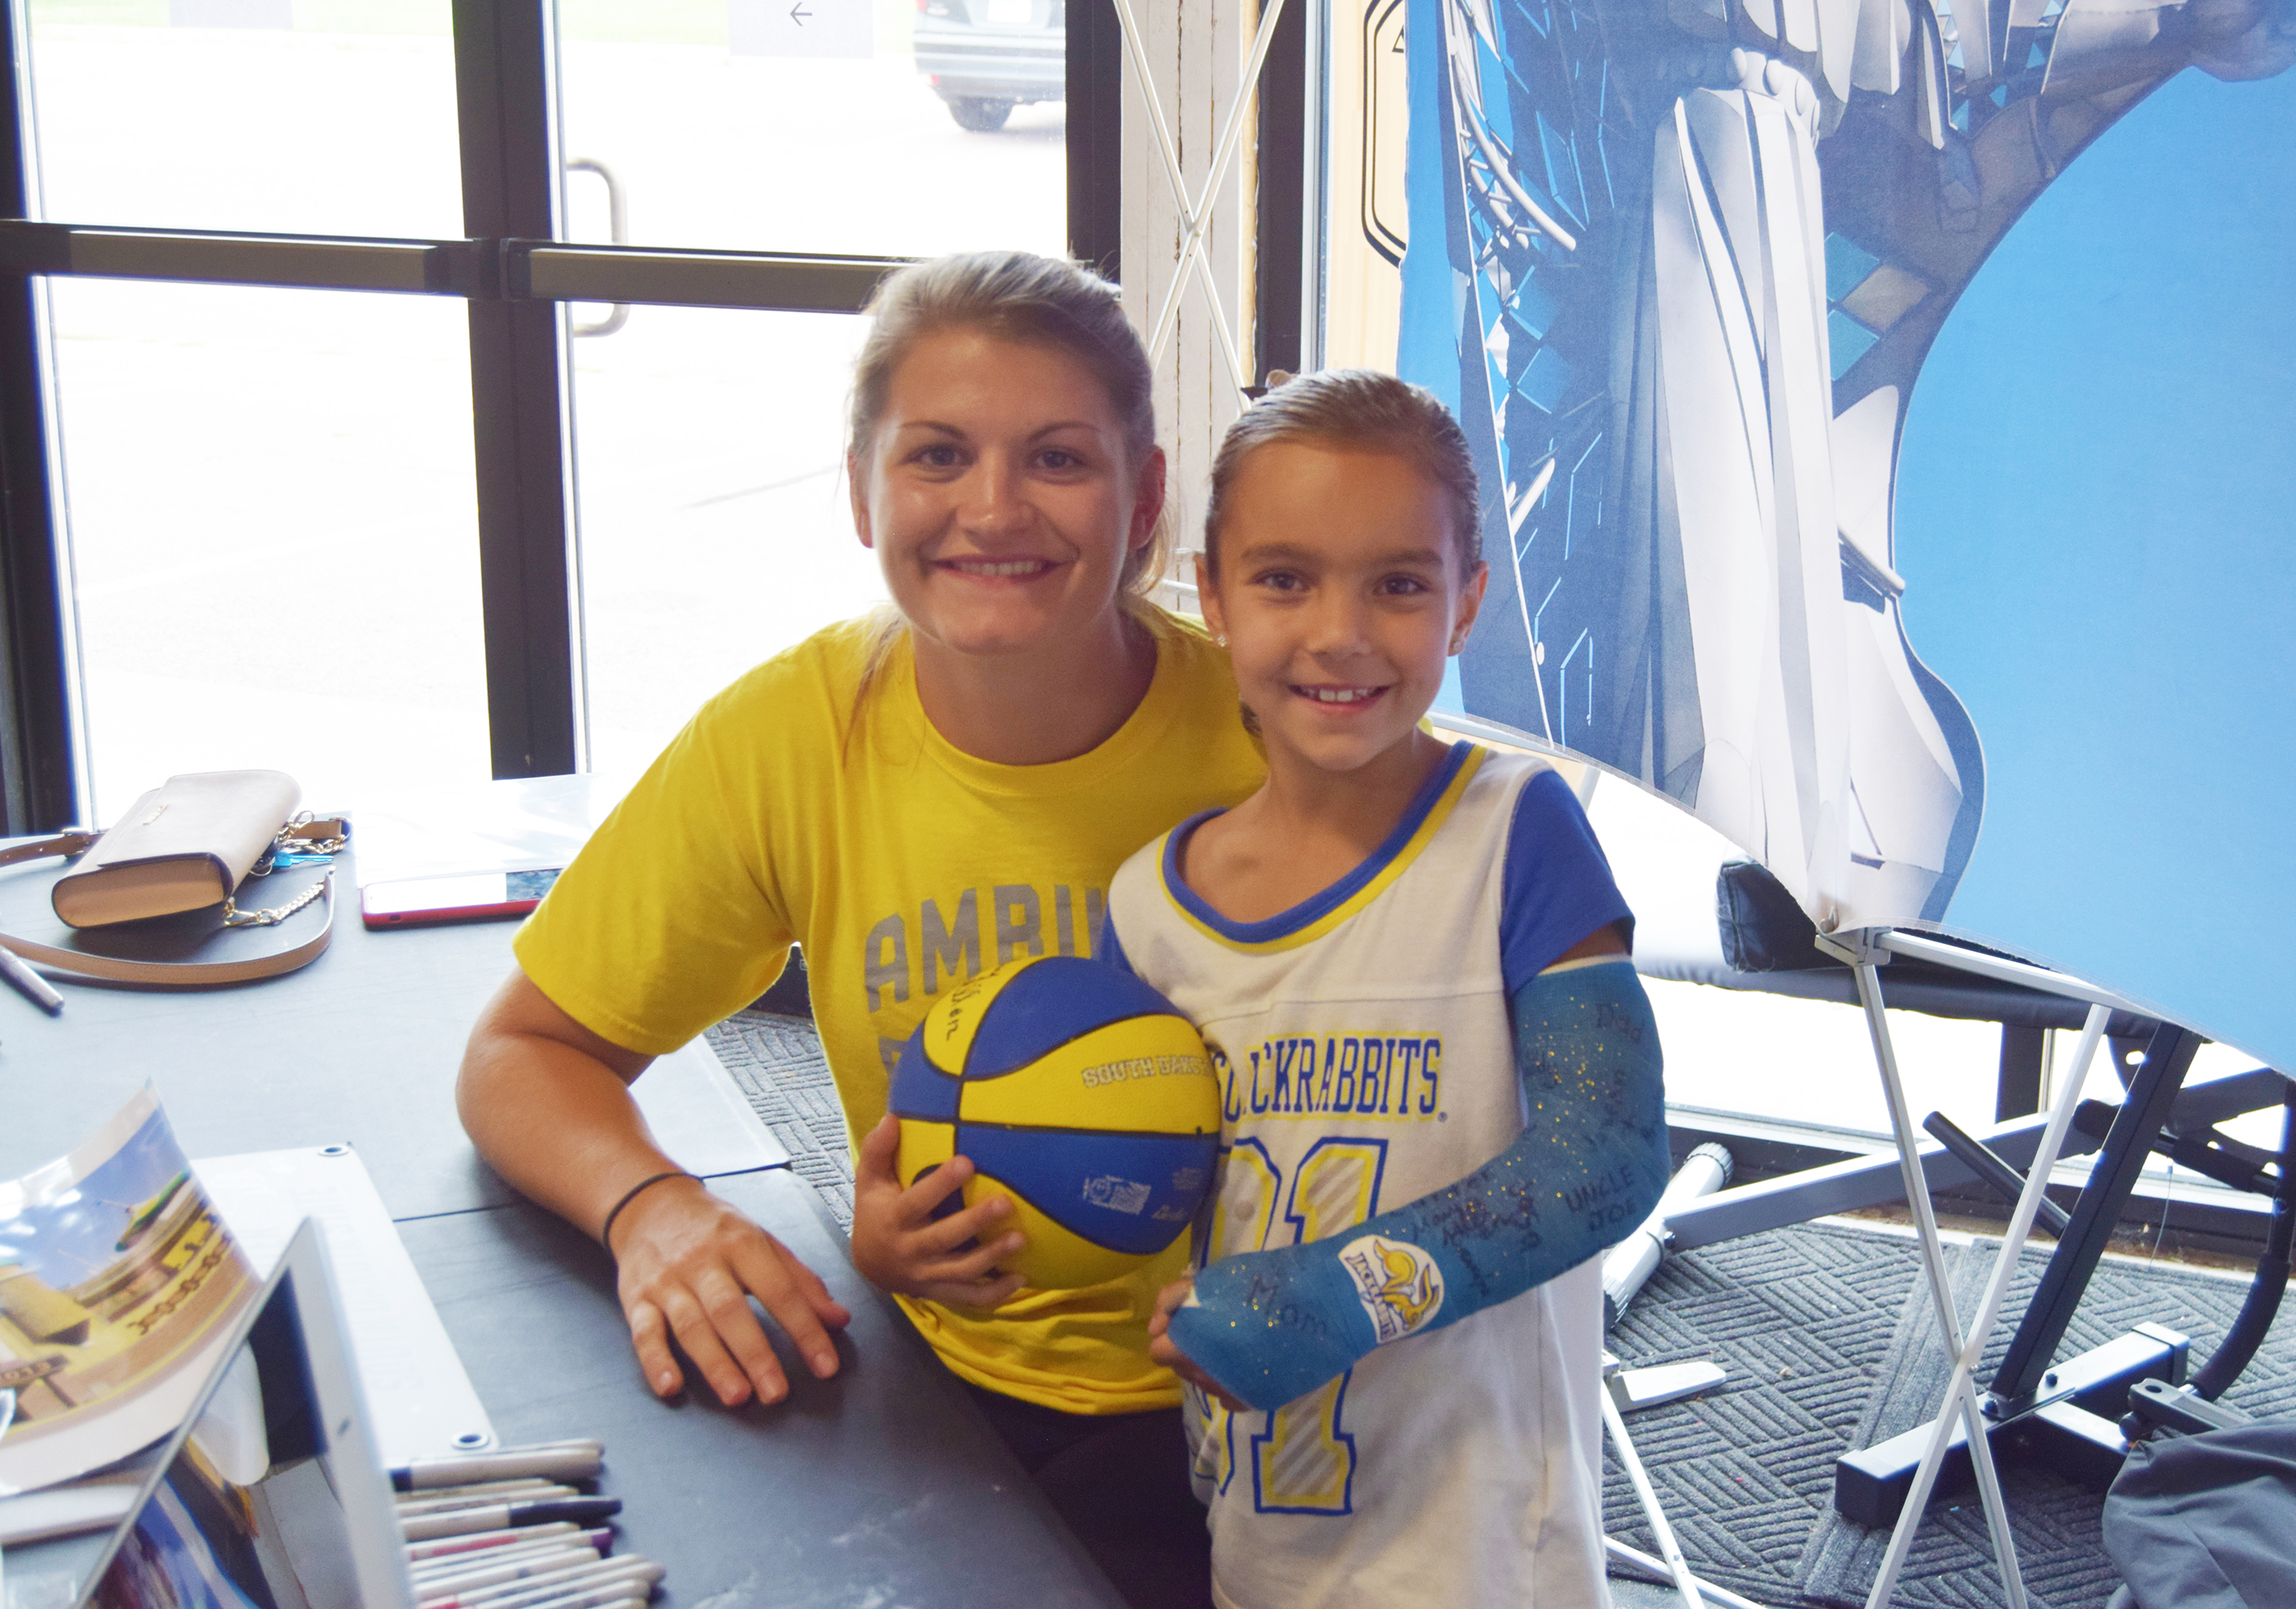 Macy Miller, all-time leading scorer in South Dakota State University and Summit League women's basketball history, stopped by Brandon's Ambush Basketball Friday to sign autographs and inspire local youth basketball players. For second-grader, Kamryn Darling, one of Miller's prized authographs went on her arm cast. <strong>McClane Archer/BV Journal</strong>*/